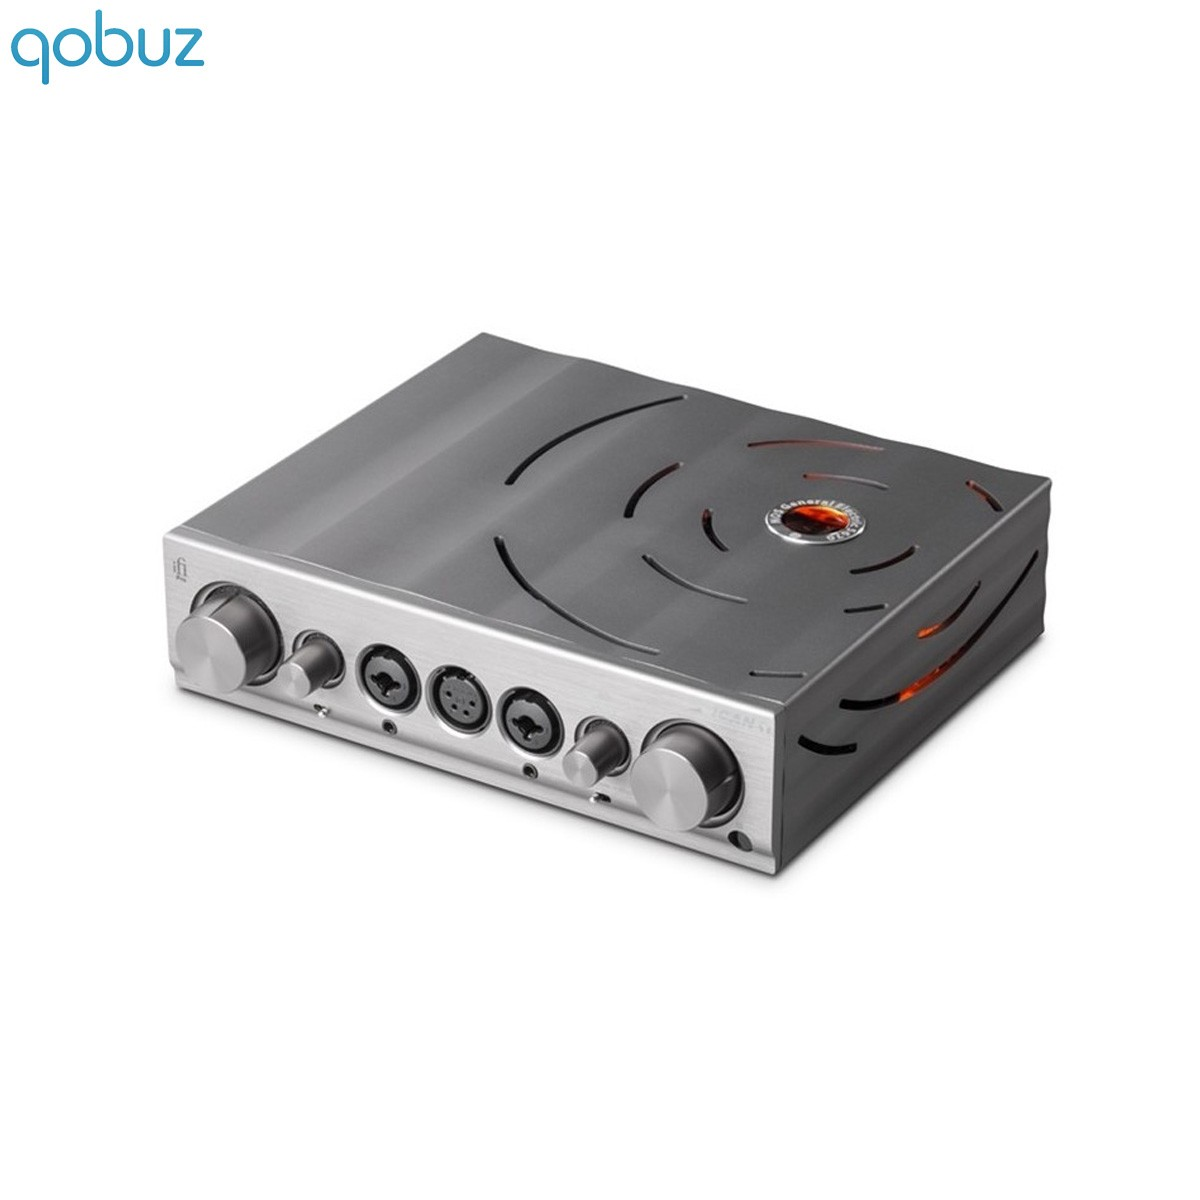 ifi Audio pro iCAN Valve Preamplifier / Headphone Amplifier